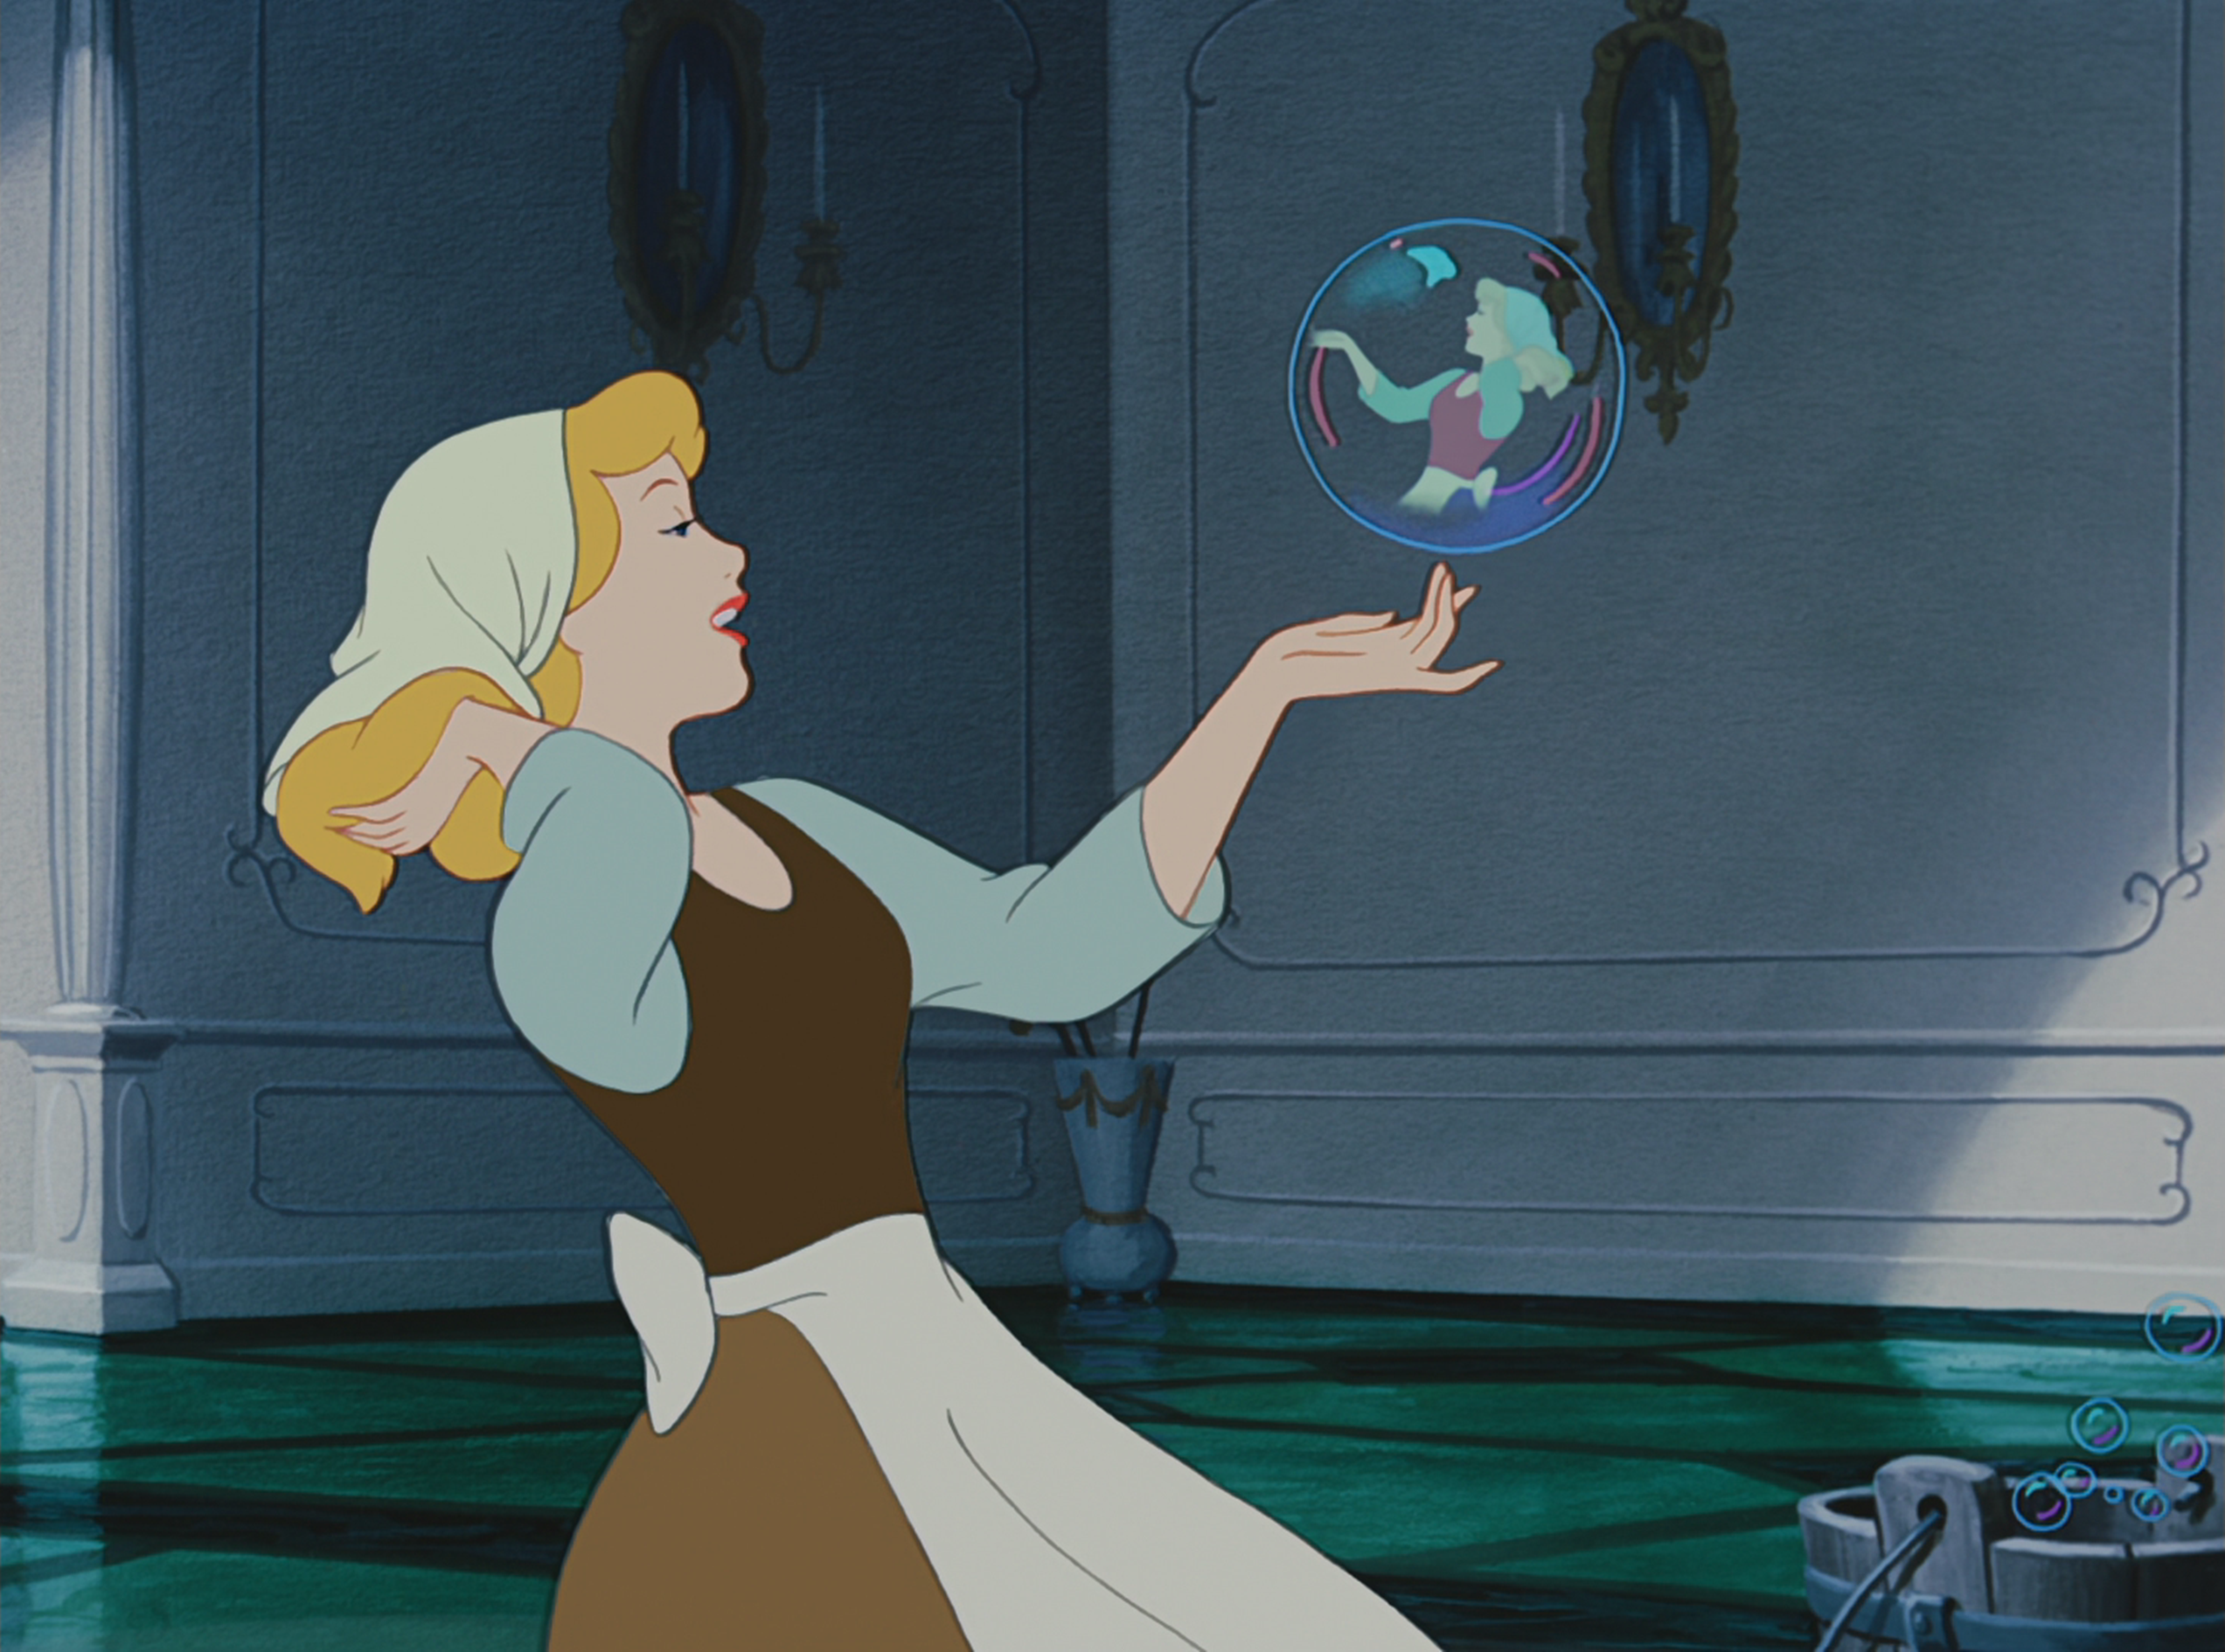 the rags to riches story of cinderella in the walt disneys version of cinderella